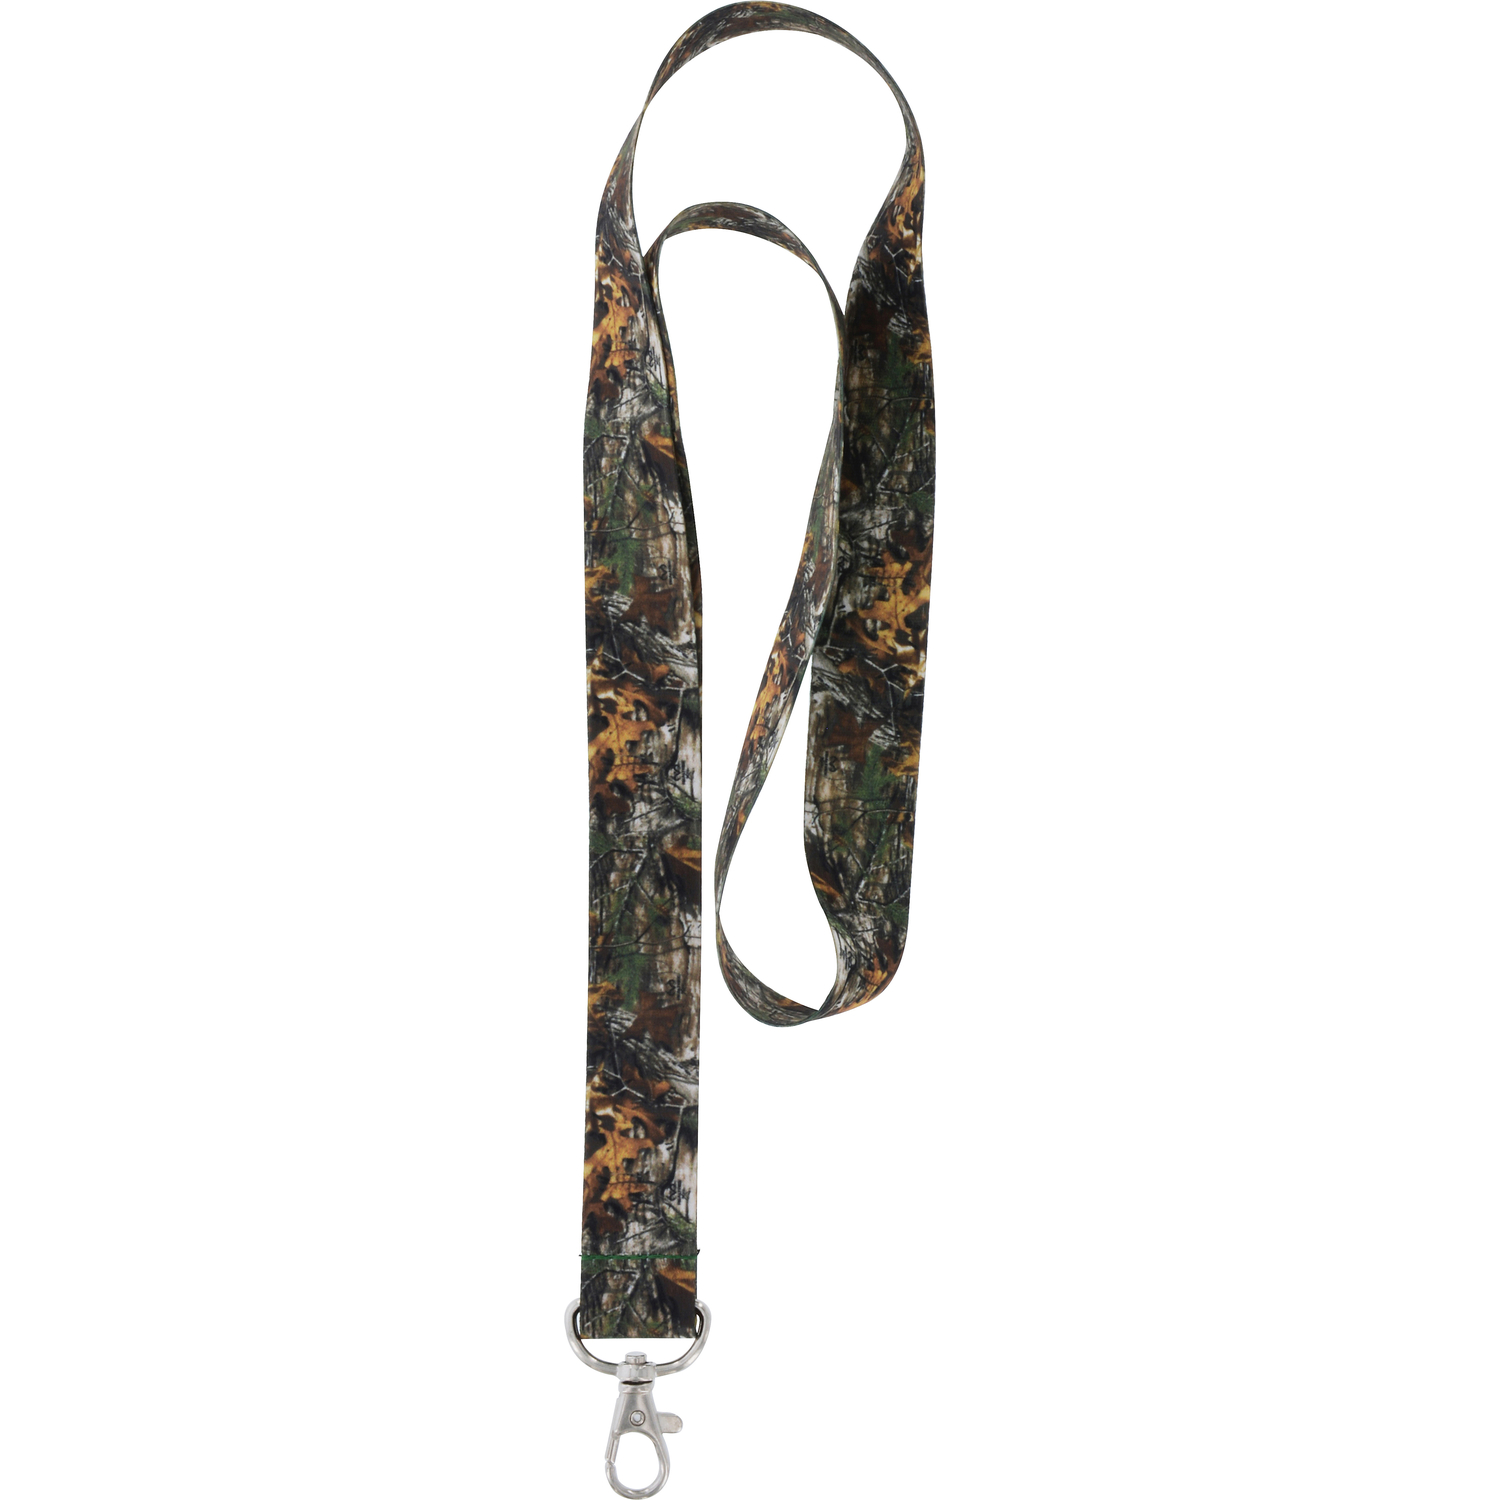 HILLMAN  Realtee  Polyester  Multicolored  Decorative Key Chain  Lanyard